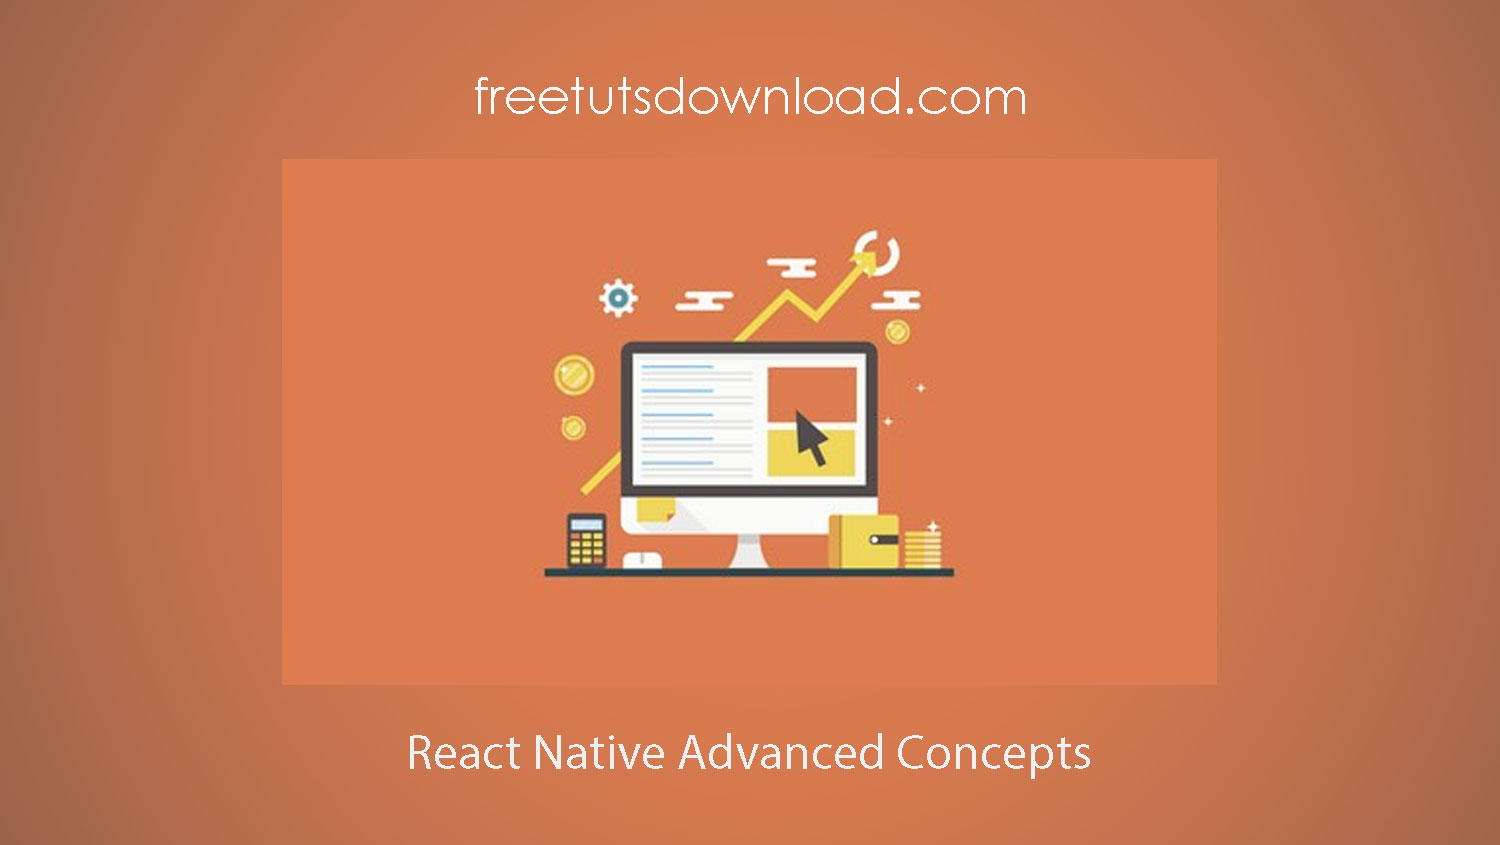 React Native Advanced Concepts Free Download